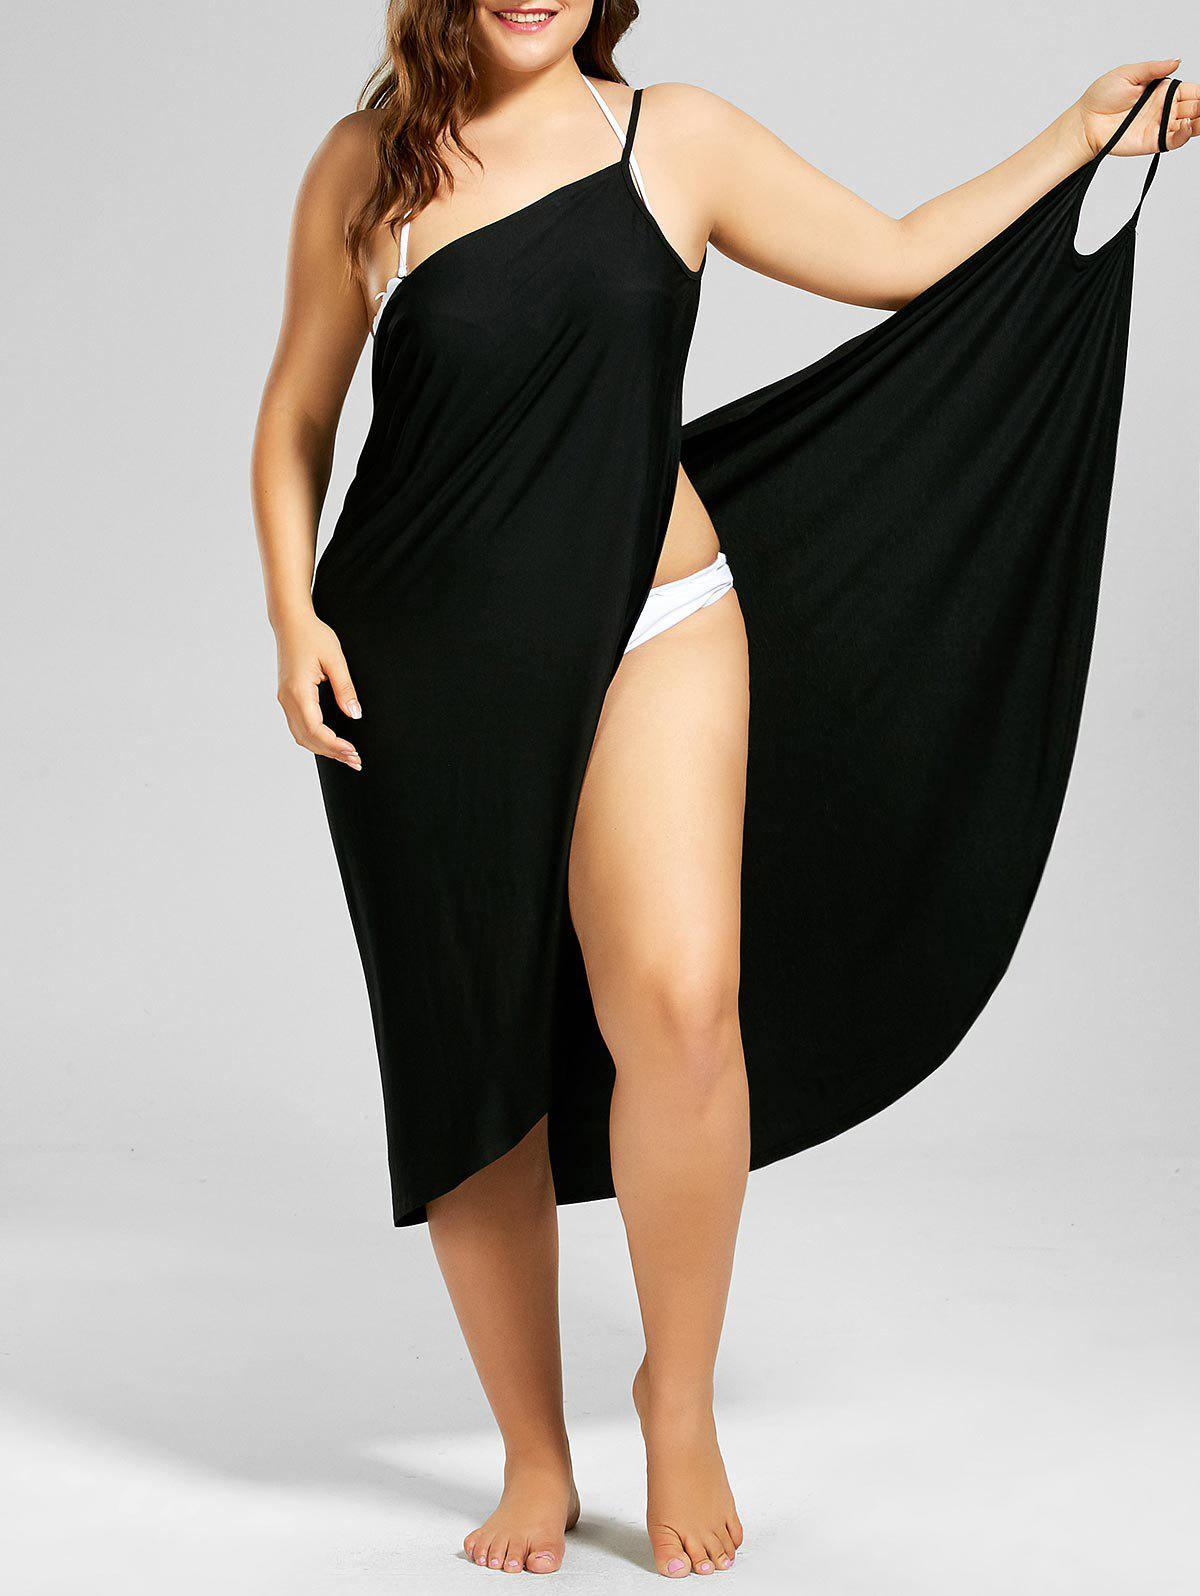 Plus Size Beach Cover-up Wrap Dress - BLACK XL